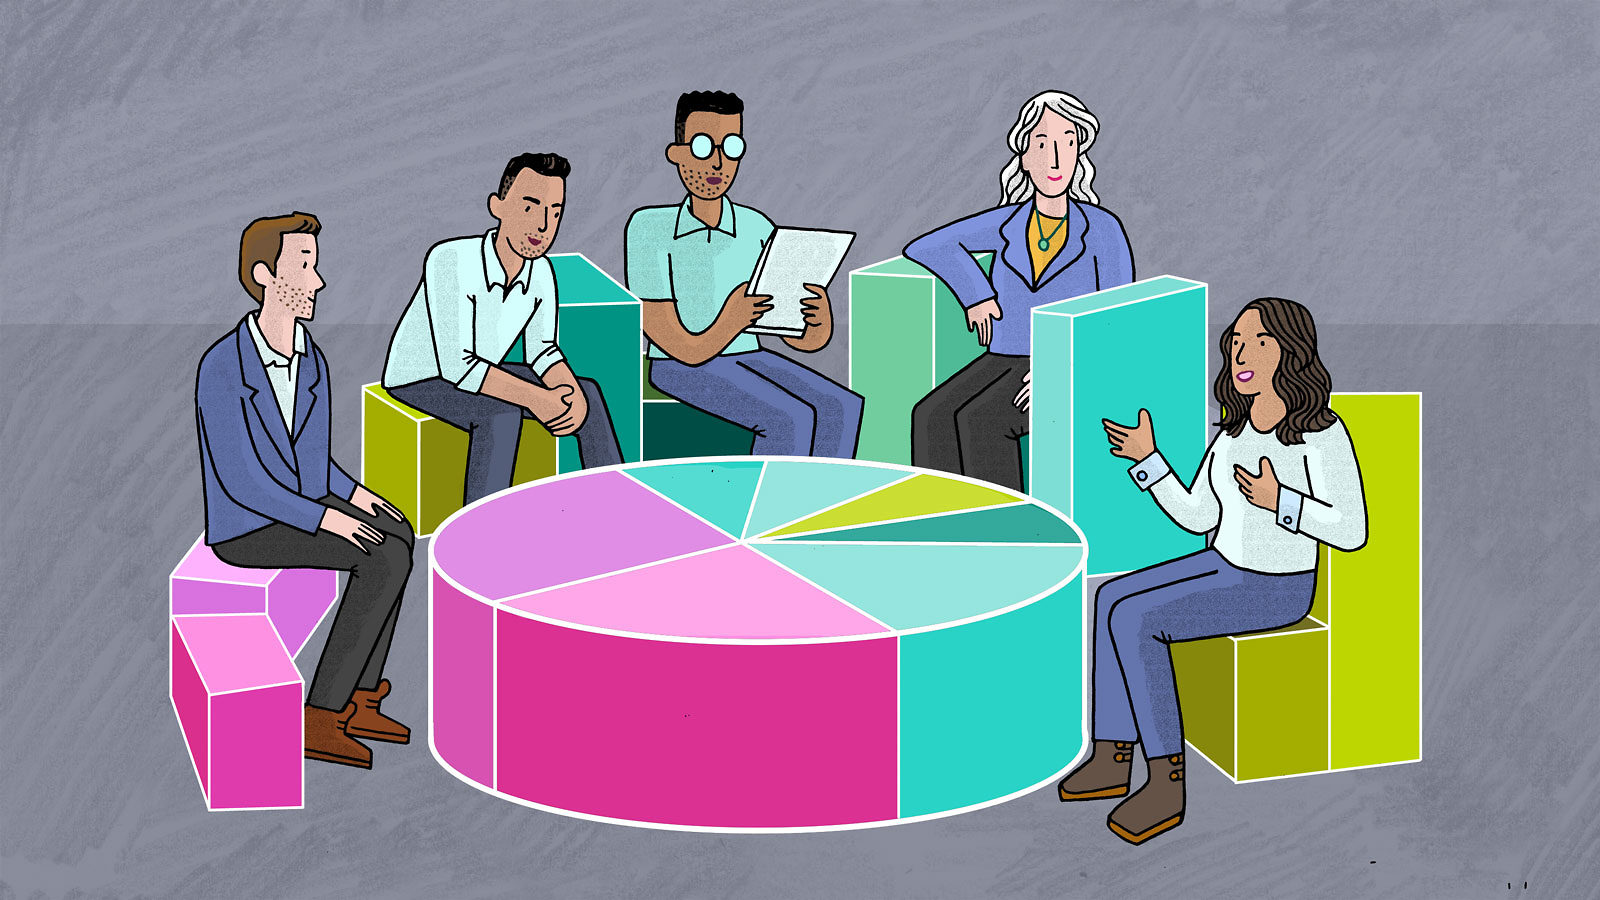 An illustration of a group of people having a discussion